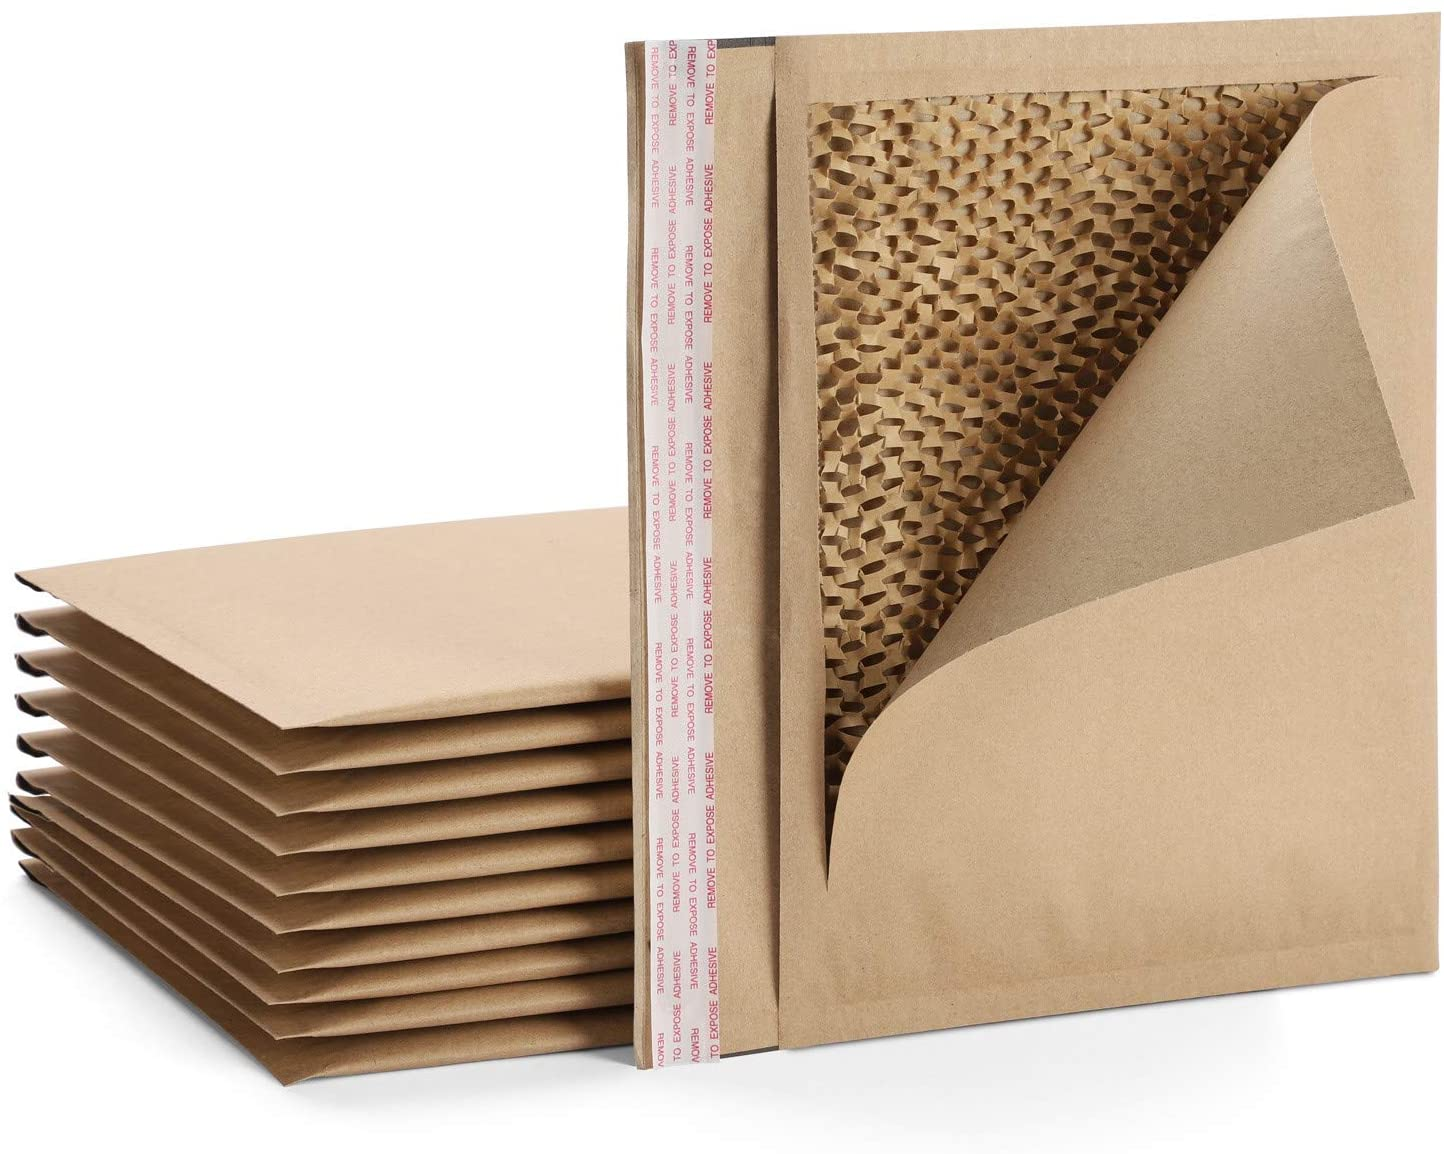 Benefits of Using Padded Mailer